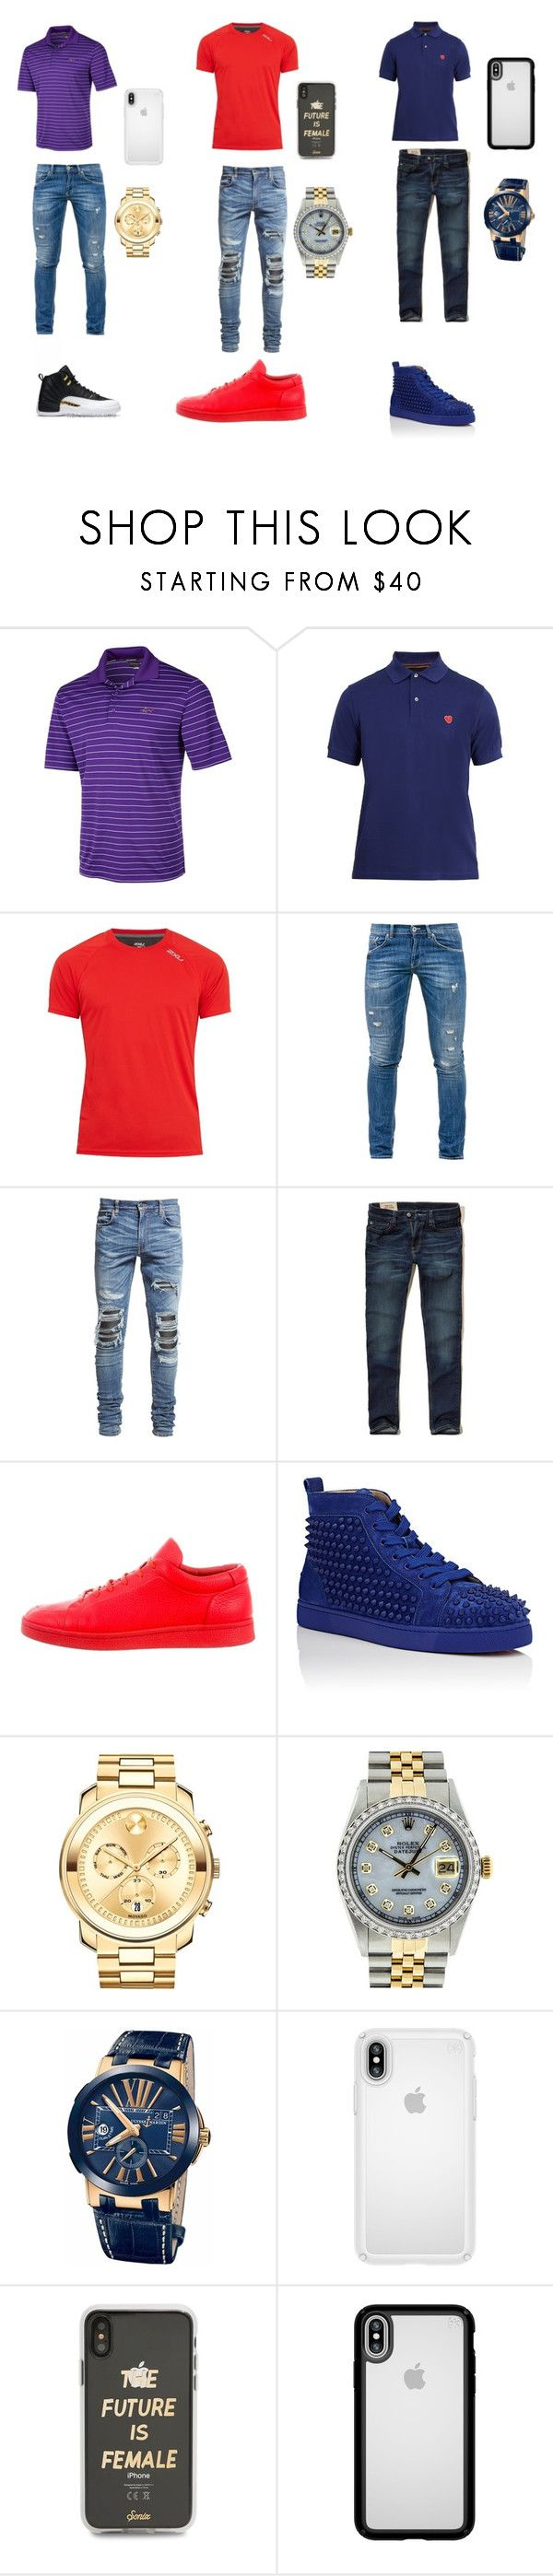 """""""Out with bae's and bros """" by theyh8tiaa ❤ liked on Polyvore featuring Greg Norman, Paul Smith, 2XU, Dondup, AMIRI, Hollister Co., Balenciaga, Christian Louboutin, Movado and Rolex"""